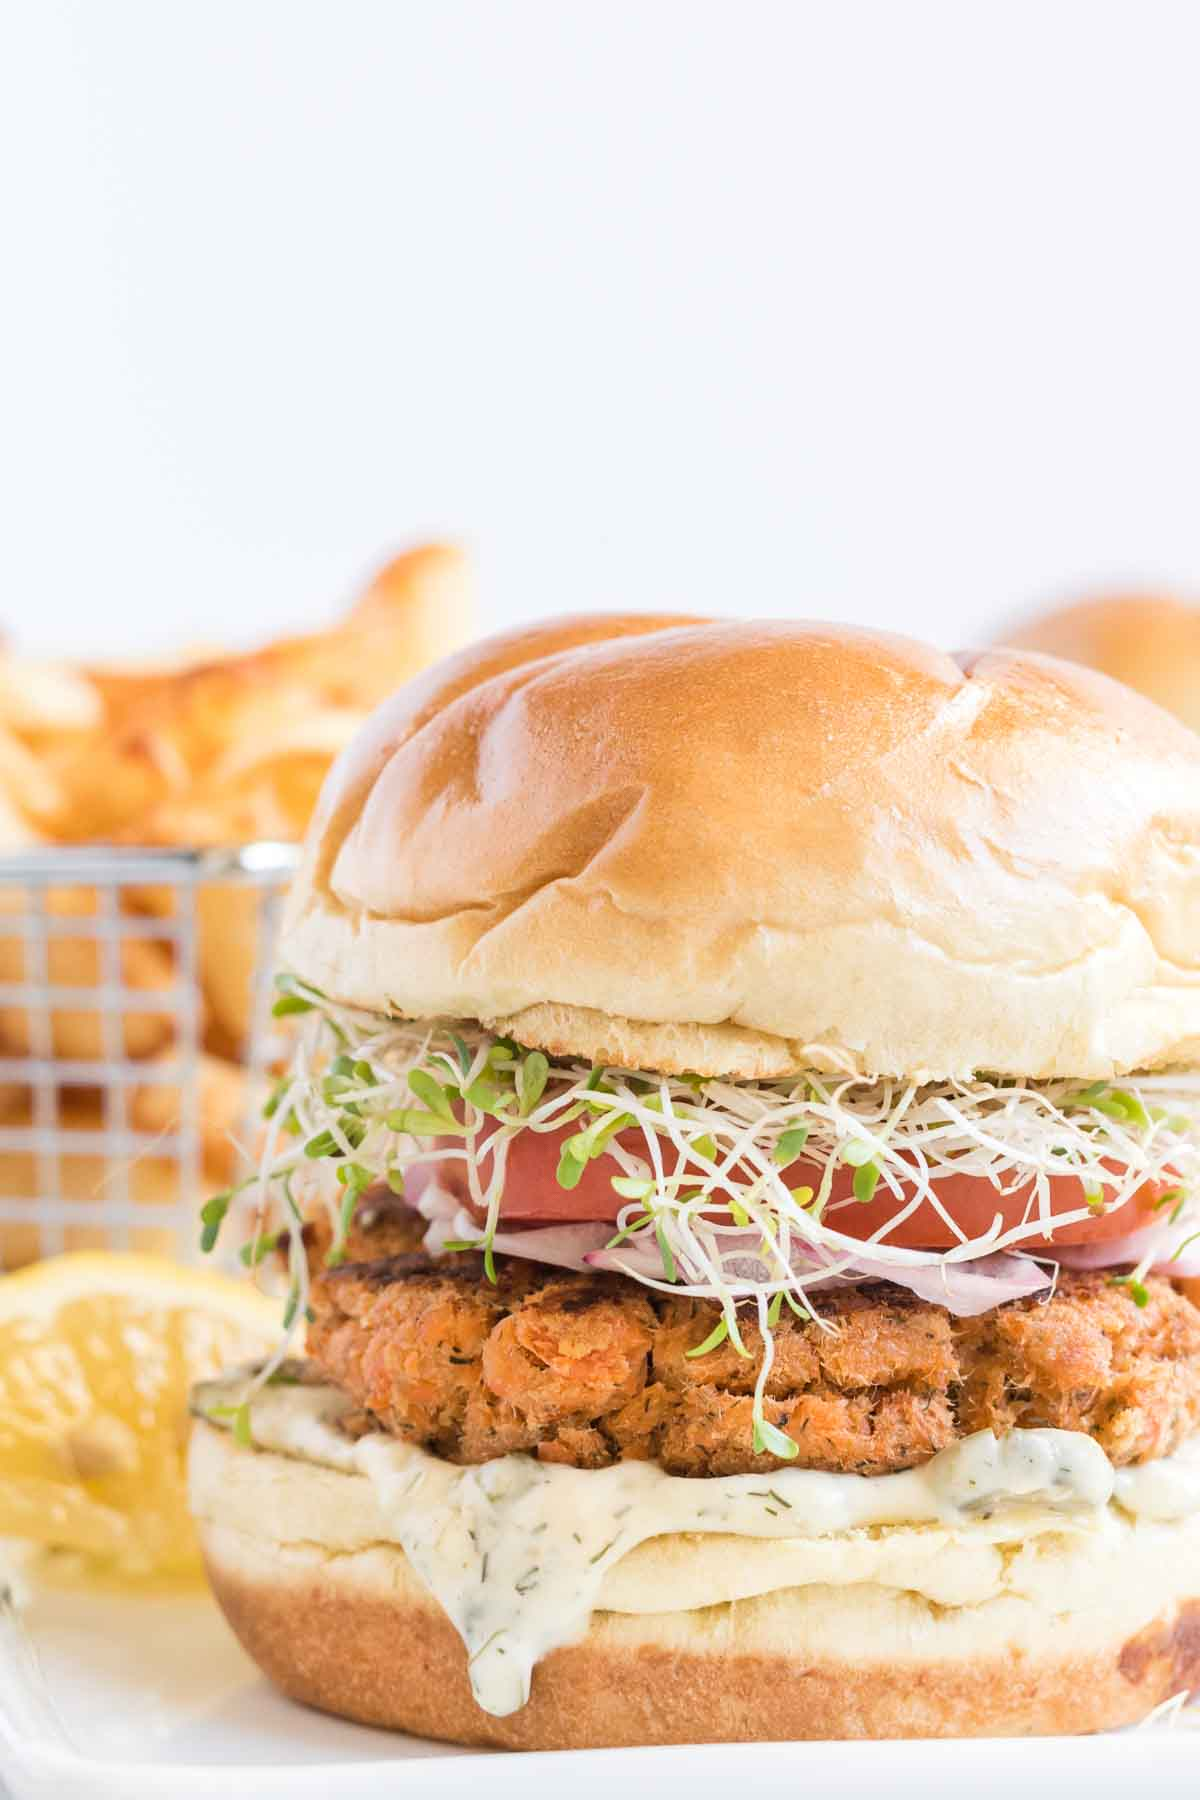 Close up of salmon burger with tartar sauce dripping out, topped with fresh veggies and french fries in the background.